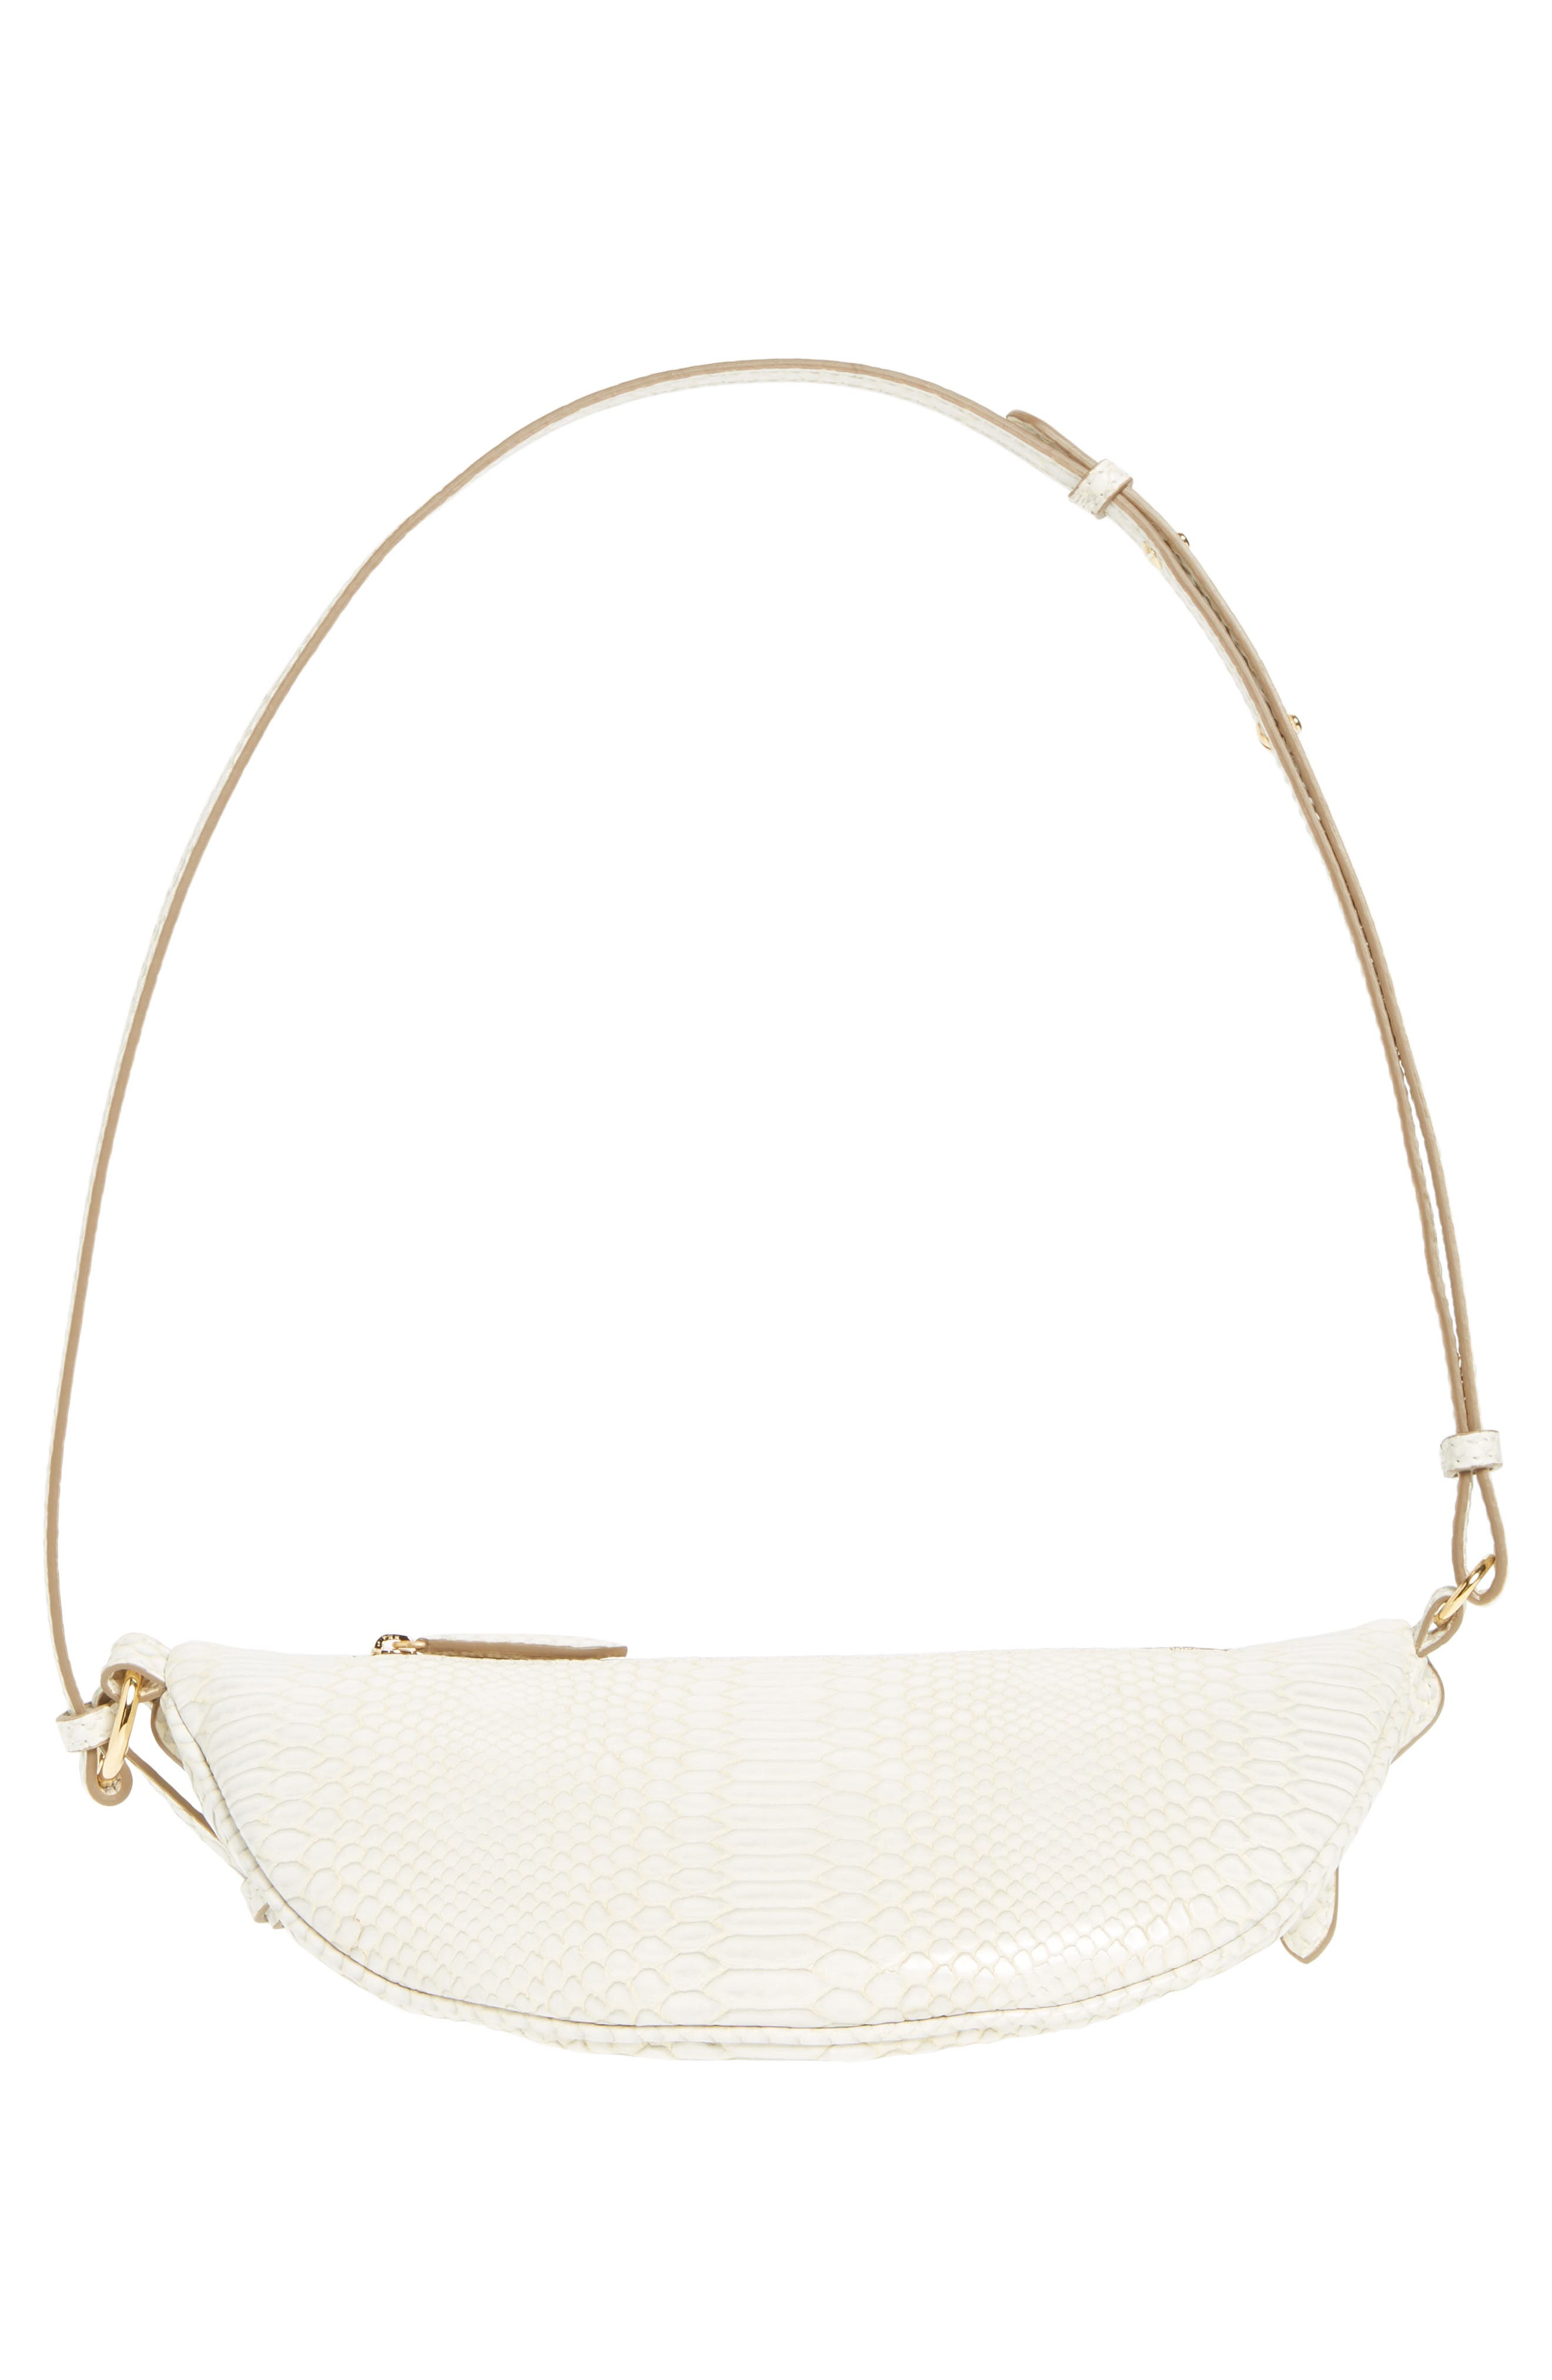 Alter Snake Faux Leather Fanny Pack,                             Alternate thumbnail 7, color,                             IVORY